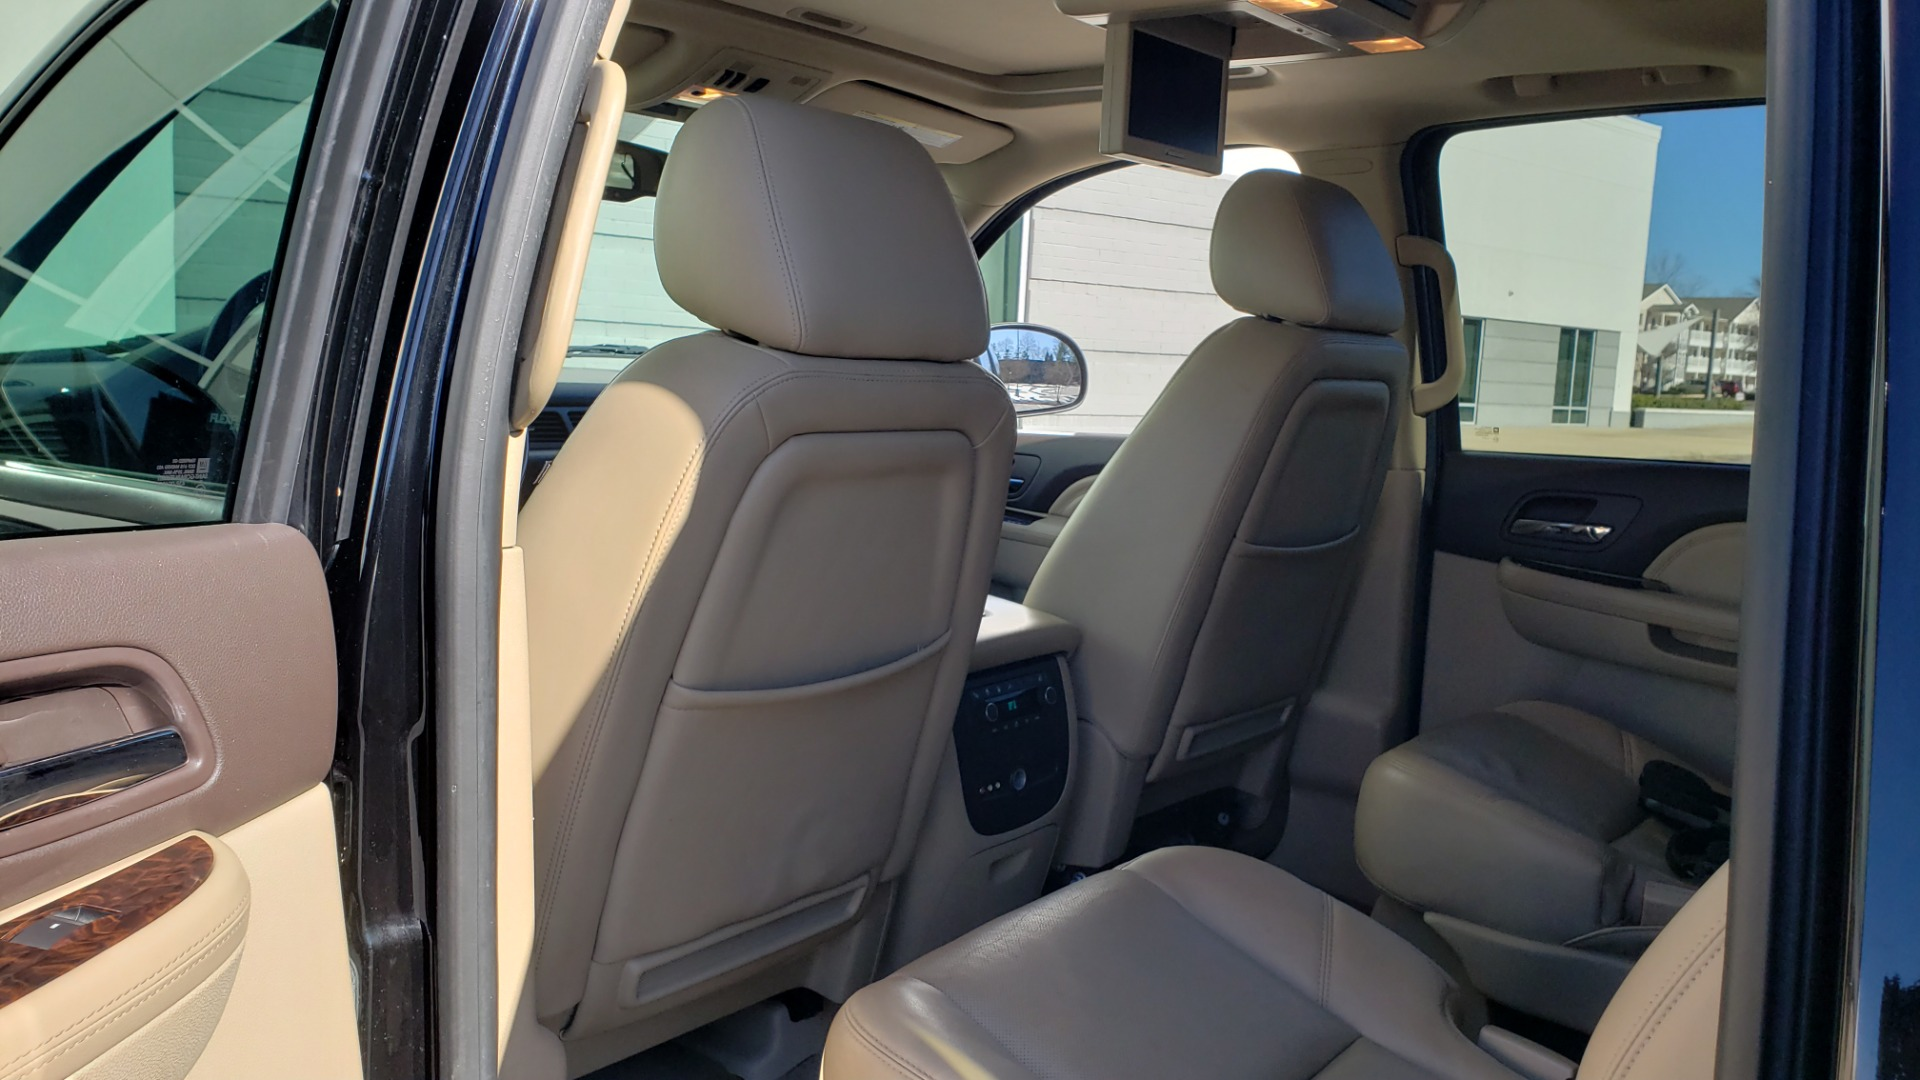 Used 2013 GMC YUKON XL DENALI / AWD / NAV / SUNROOF / 3-ROW / ENTERTAINMENT for sale Sold at Formula Imports in Charlotte NC 28227 59